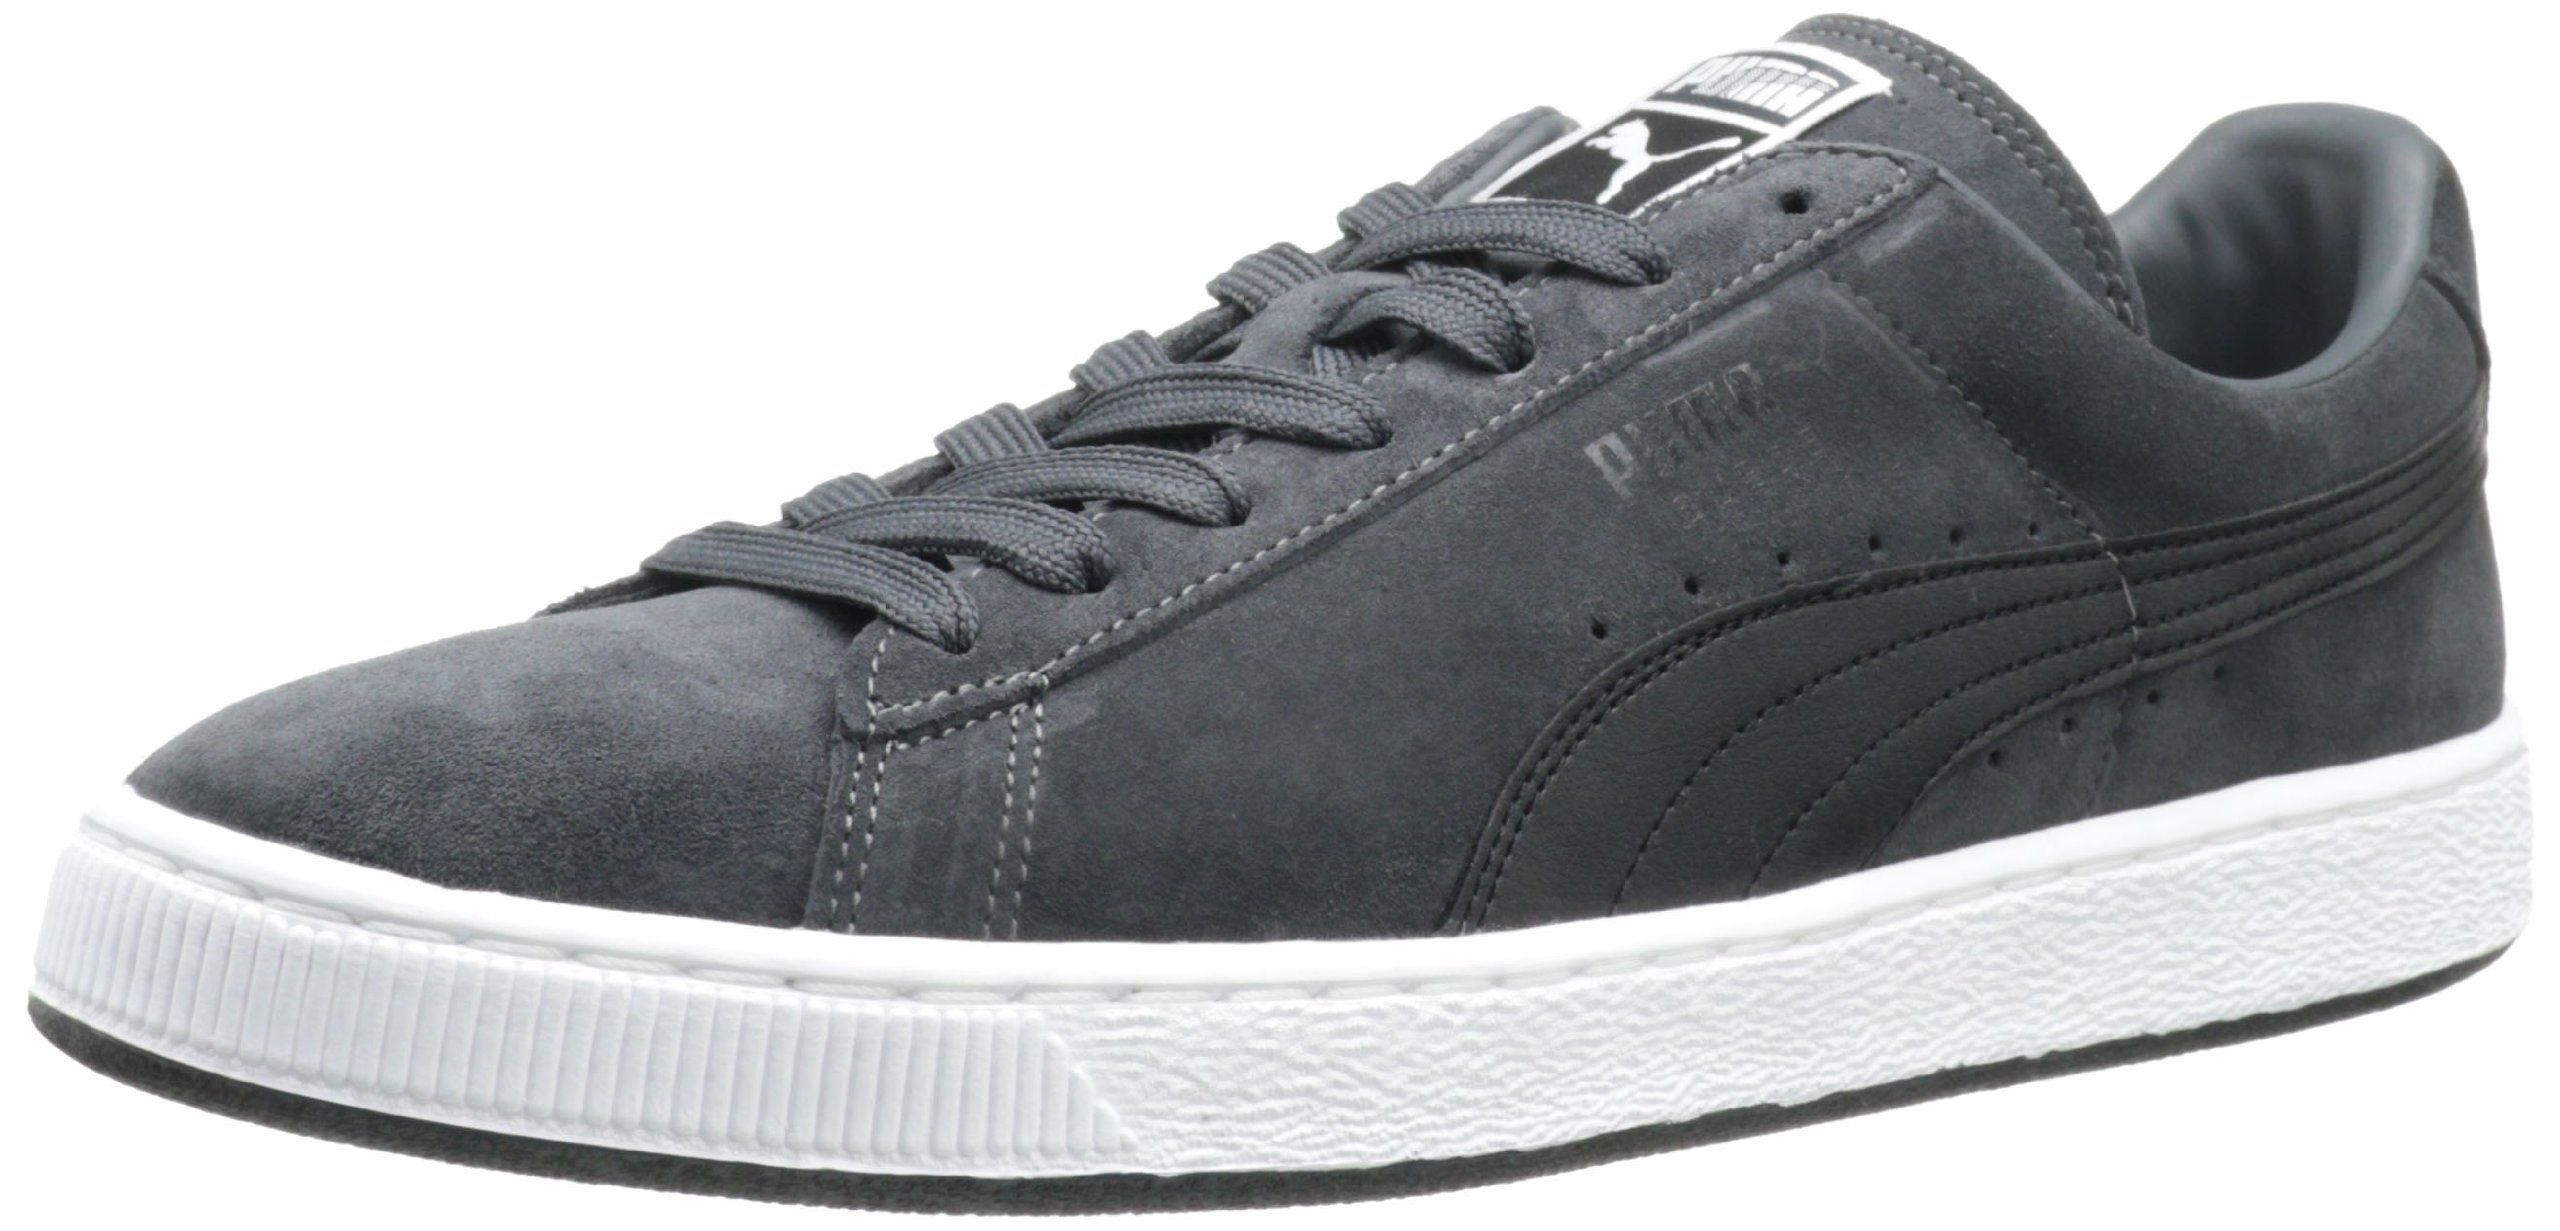 2f6d9f9ab07 Amazon.com  PUMA Suede Classic Leather Formstrip Sneaker  Fashion Sneakers   Shoes